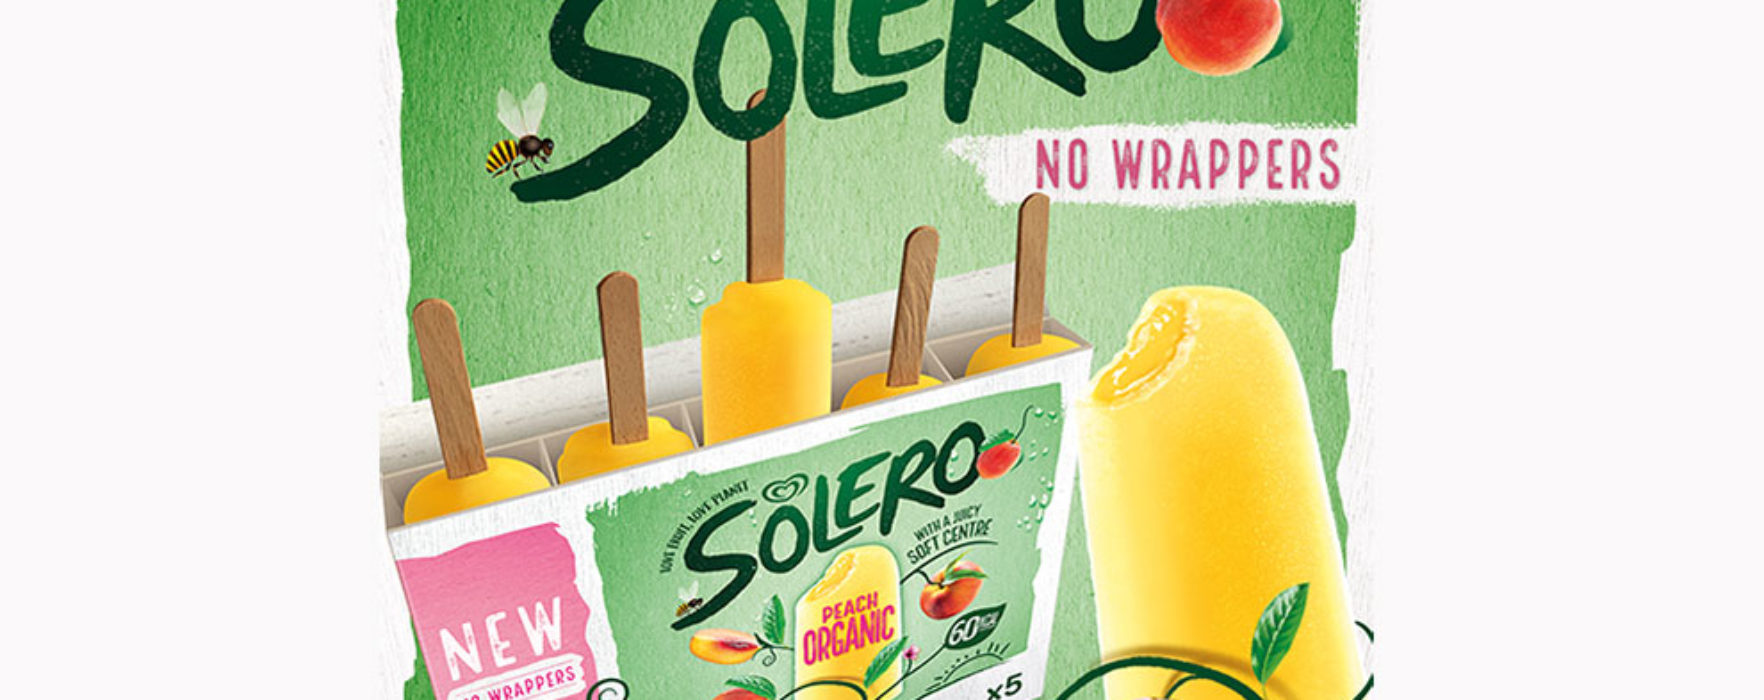 Solero introduces wrapper-less ice creams!